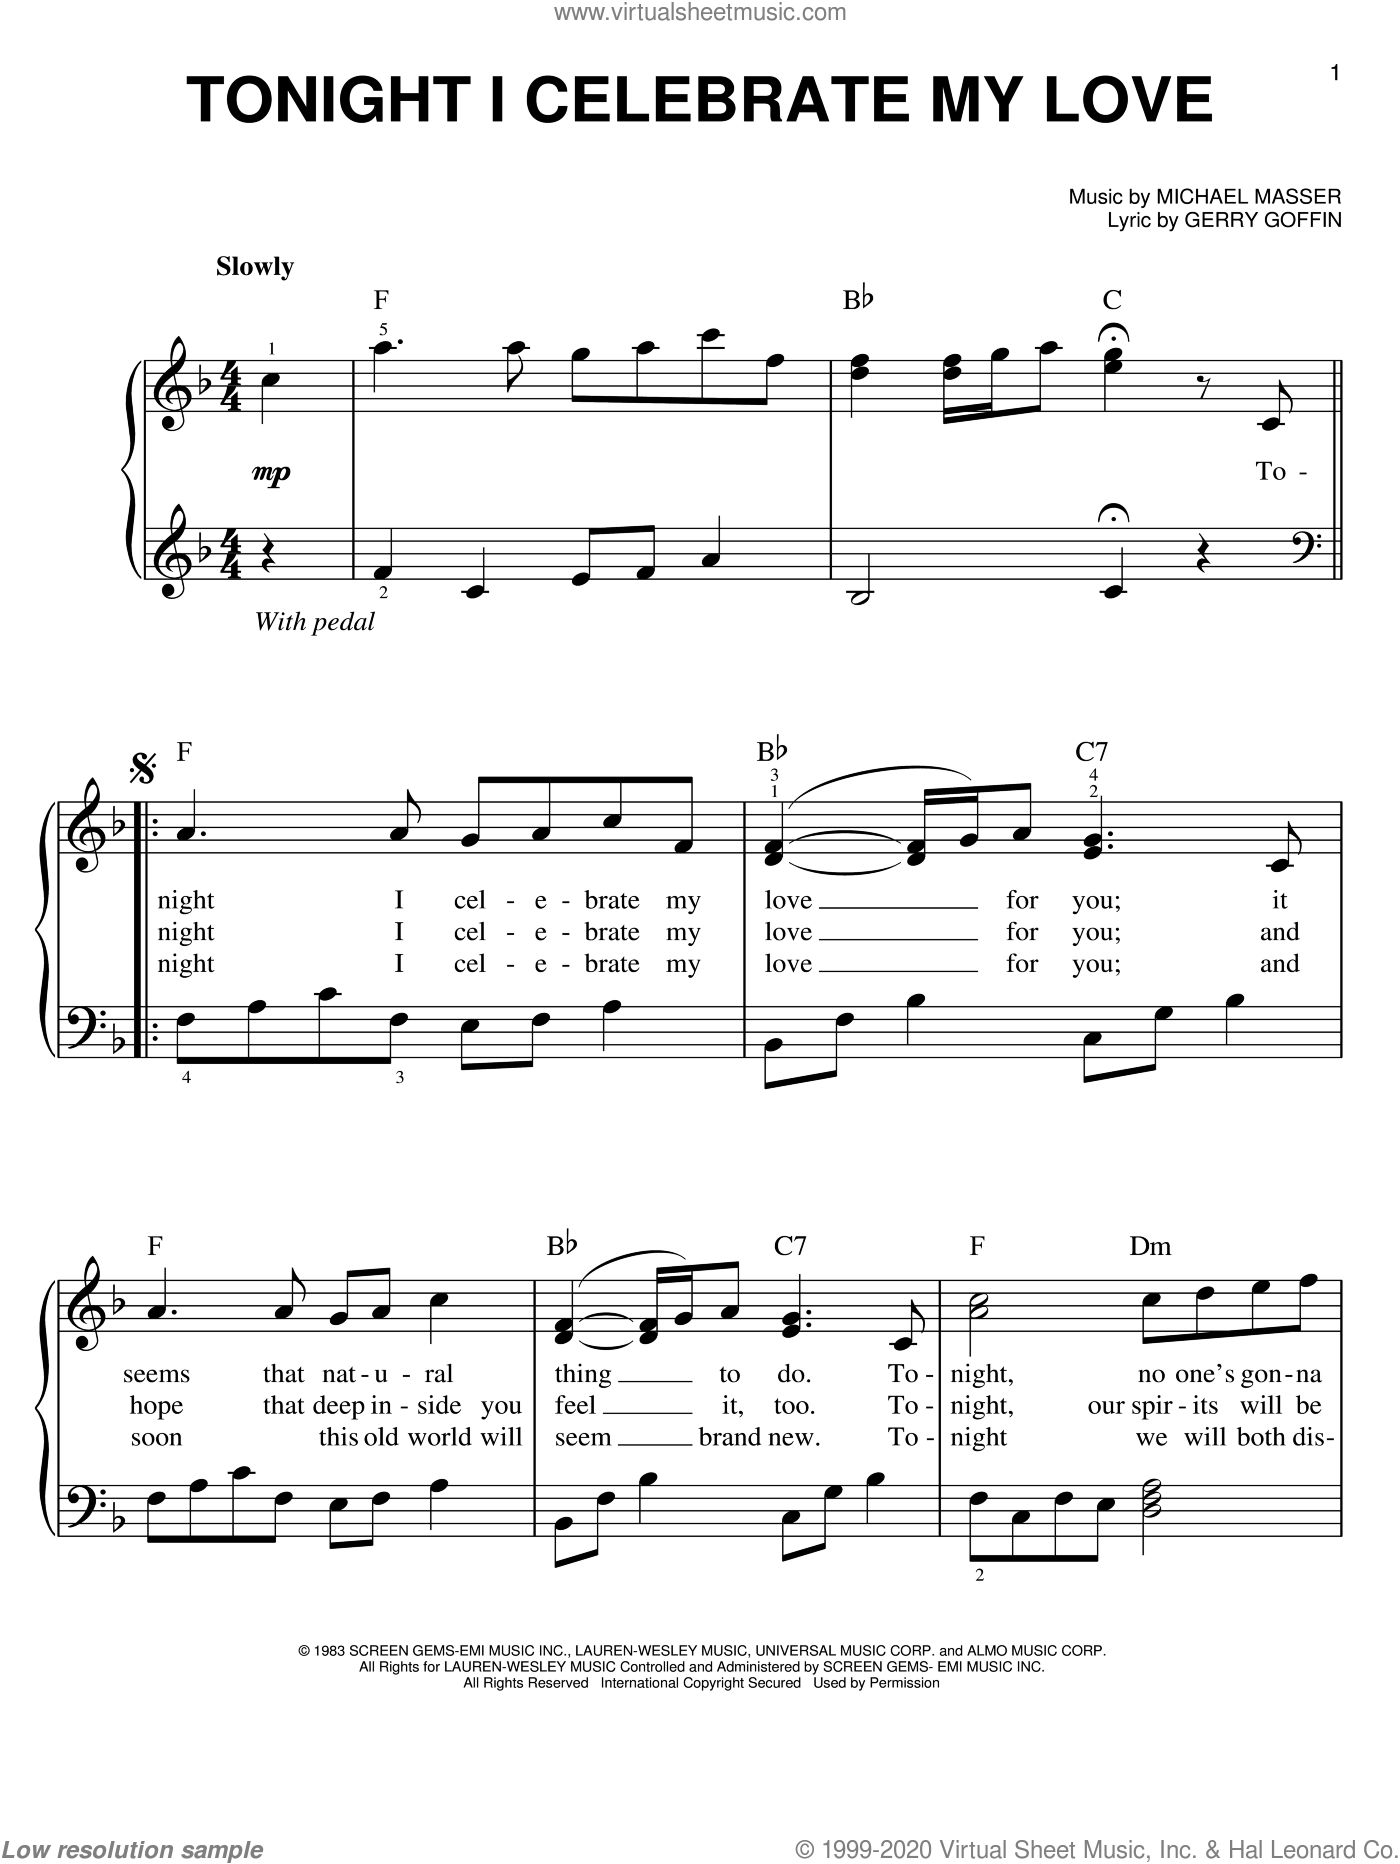 Tonight, I Celebrate My Love sheet music for piano solo by Roberta Flack, Gerry Goffin and Michael Masser, wedding score, easy skill level